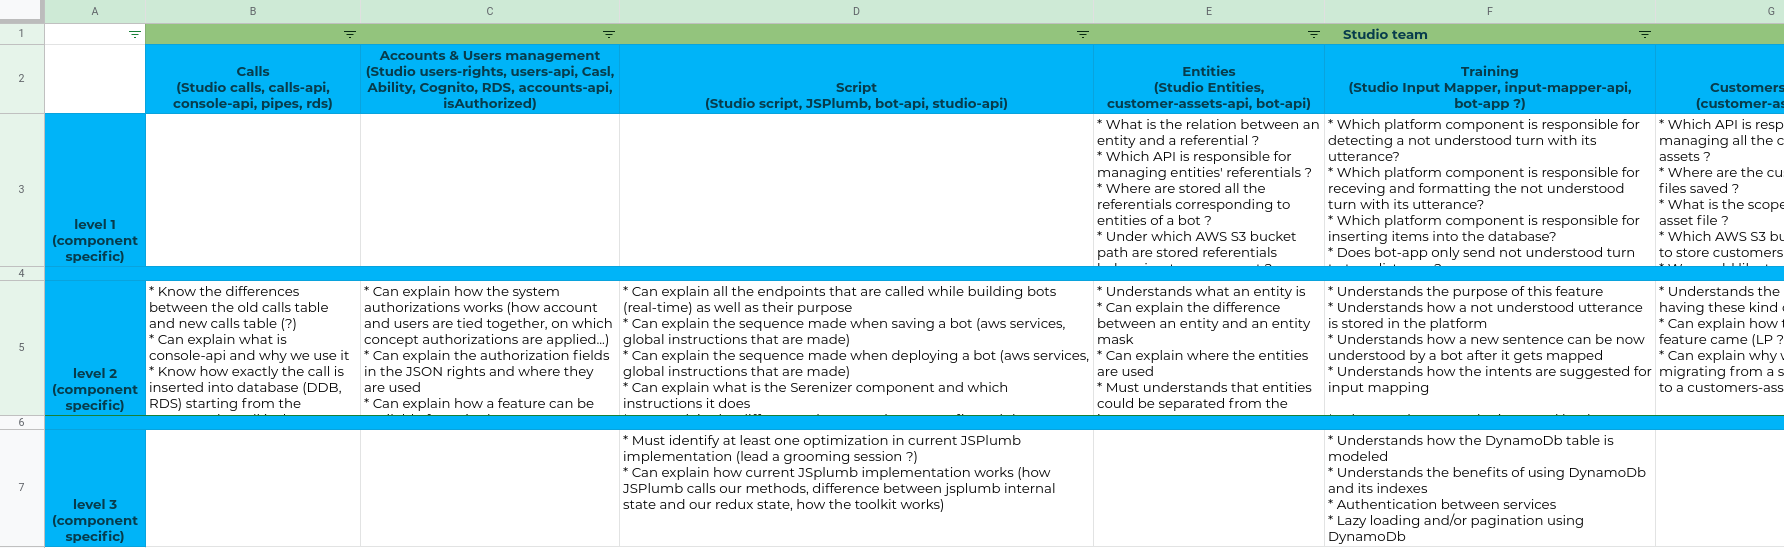 Calldesk Tech Learning Paths - Checklist.png